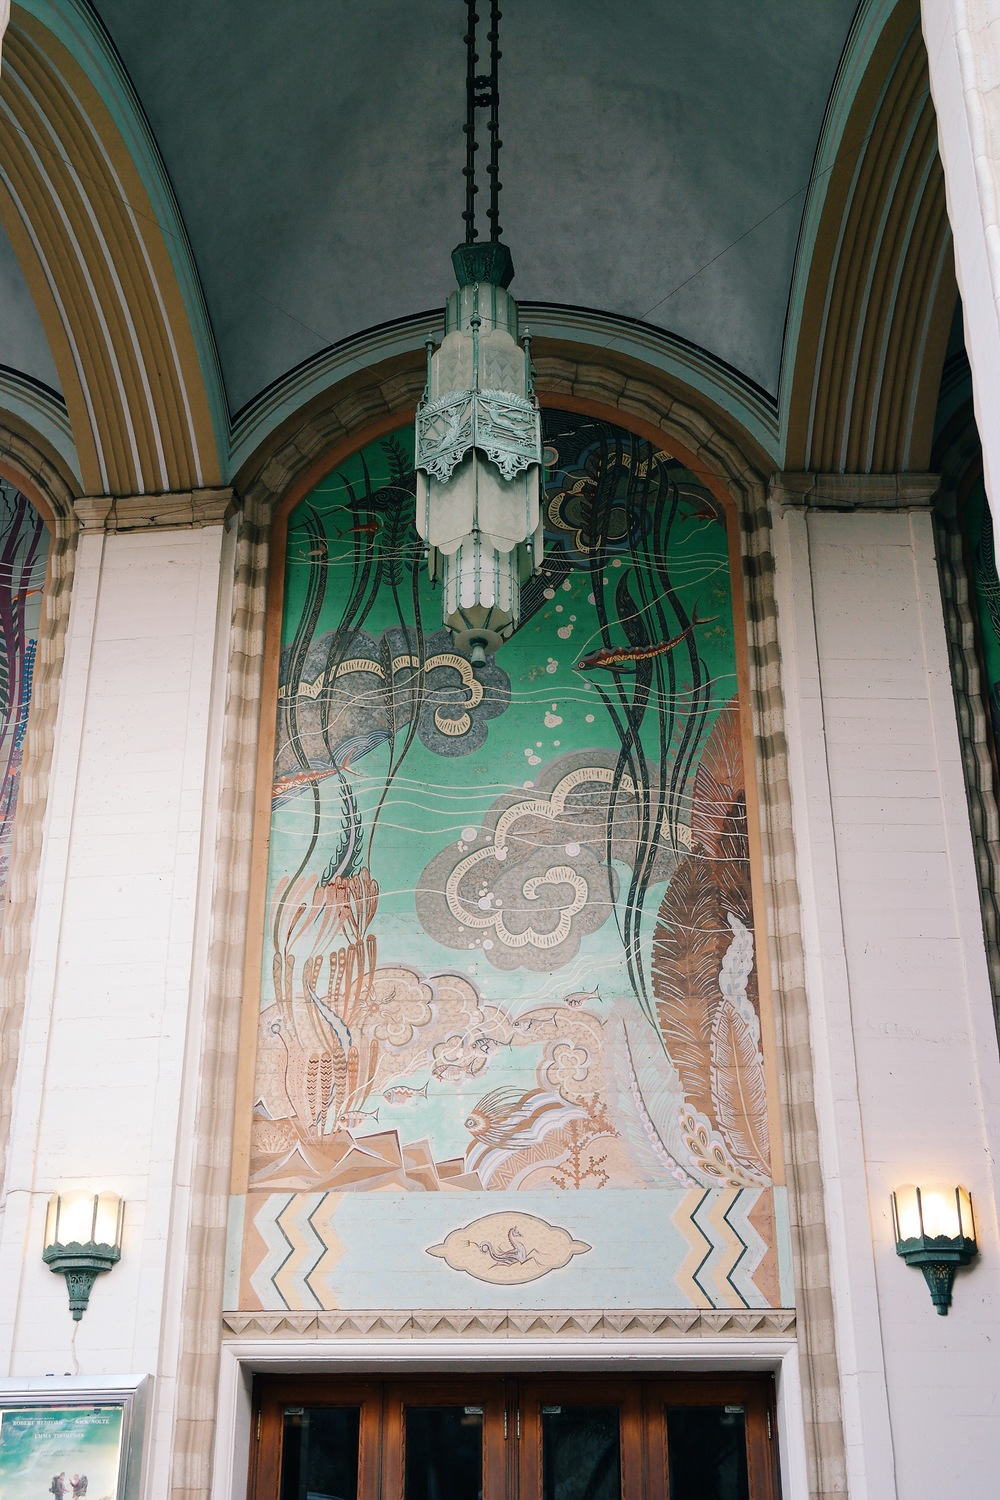 Exploring the Art Deco design at the Catalina Casino, Avalon, Catalina Island